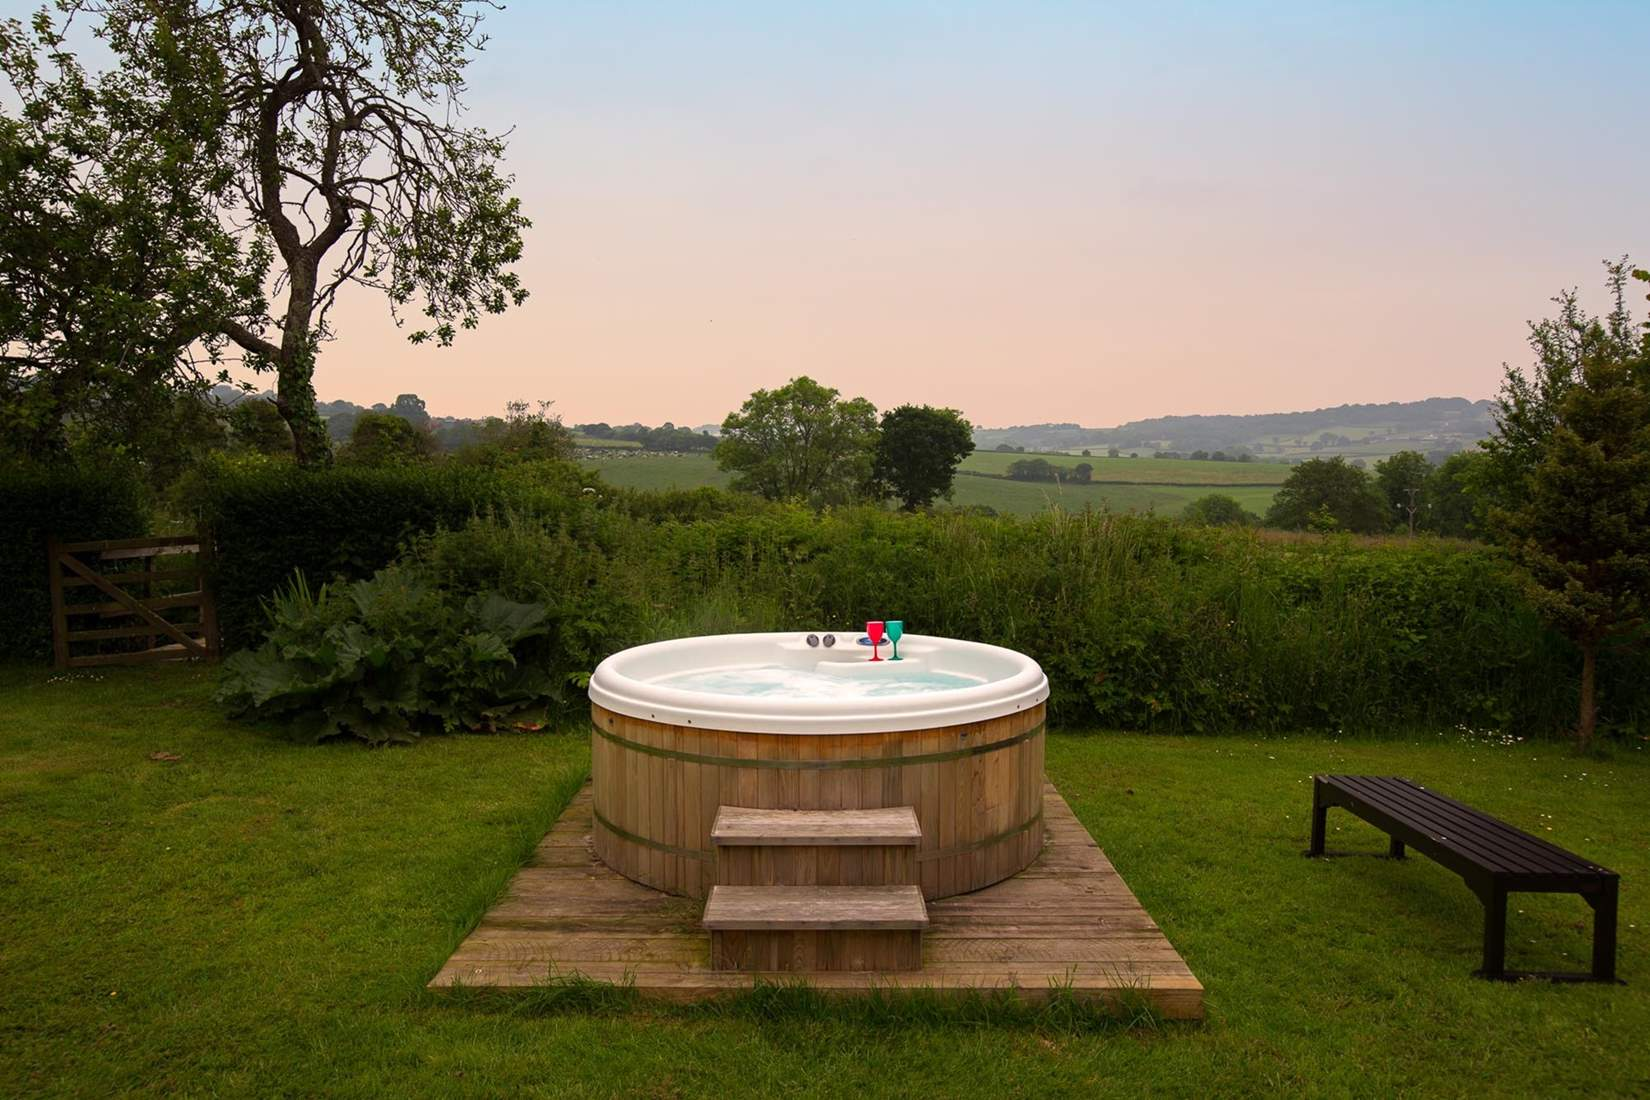 Woodend Farm Easter hot tub